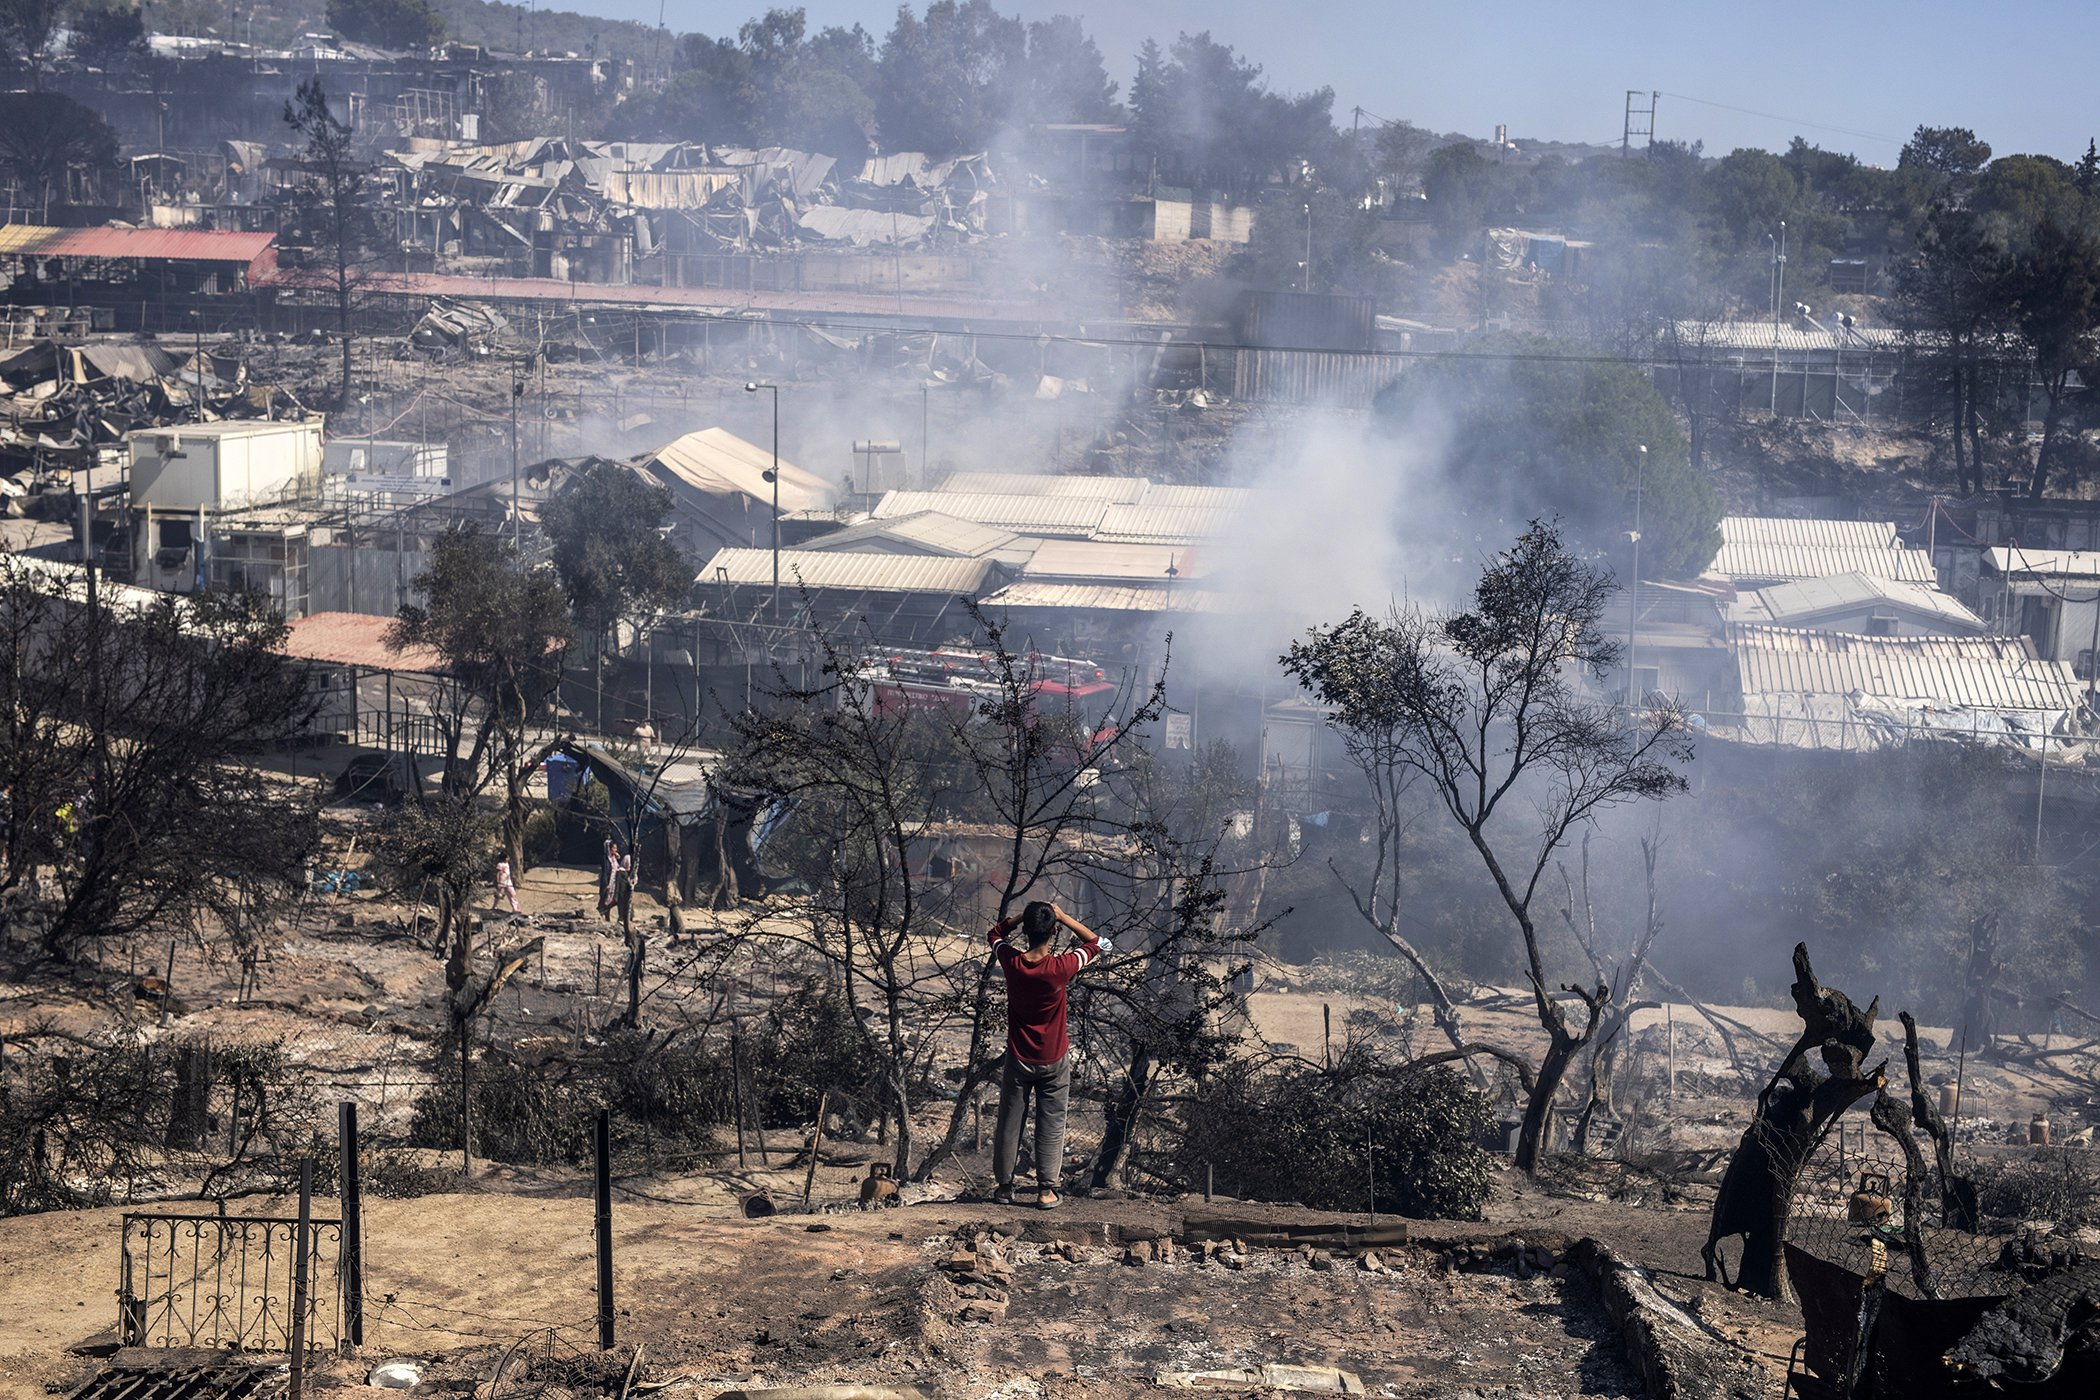 Moria-Refugee-Camp-Fire-002.jpg